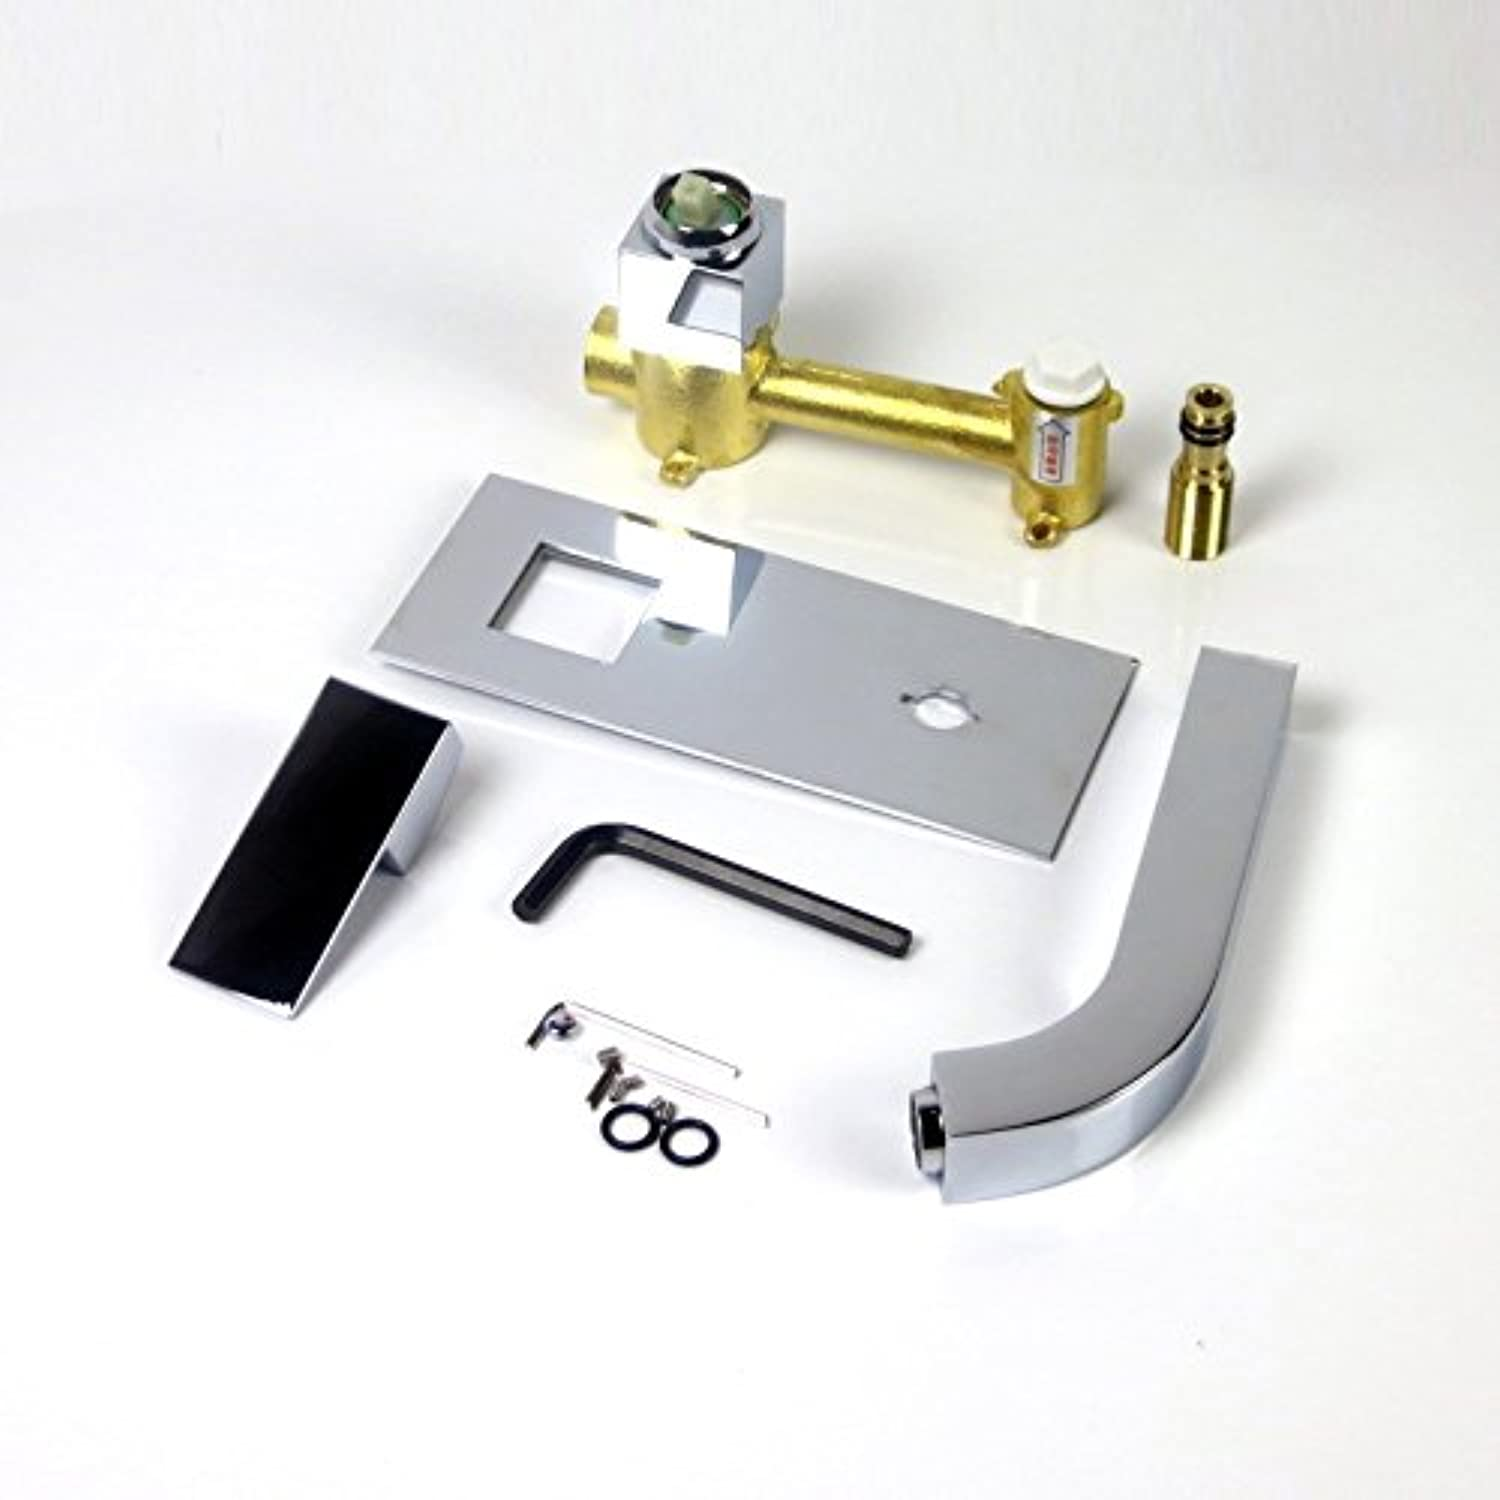 Lalaky Taps Faucet Kitchen Mixer Sink Waterfall Bathroom Mixer Basin Mixer Tap for Kitchen Bathroom and Washroom Wall-Mounted Hot and Cold Concealed